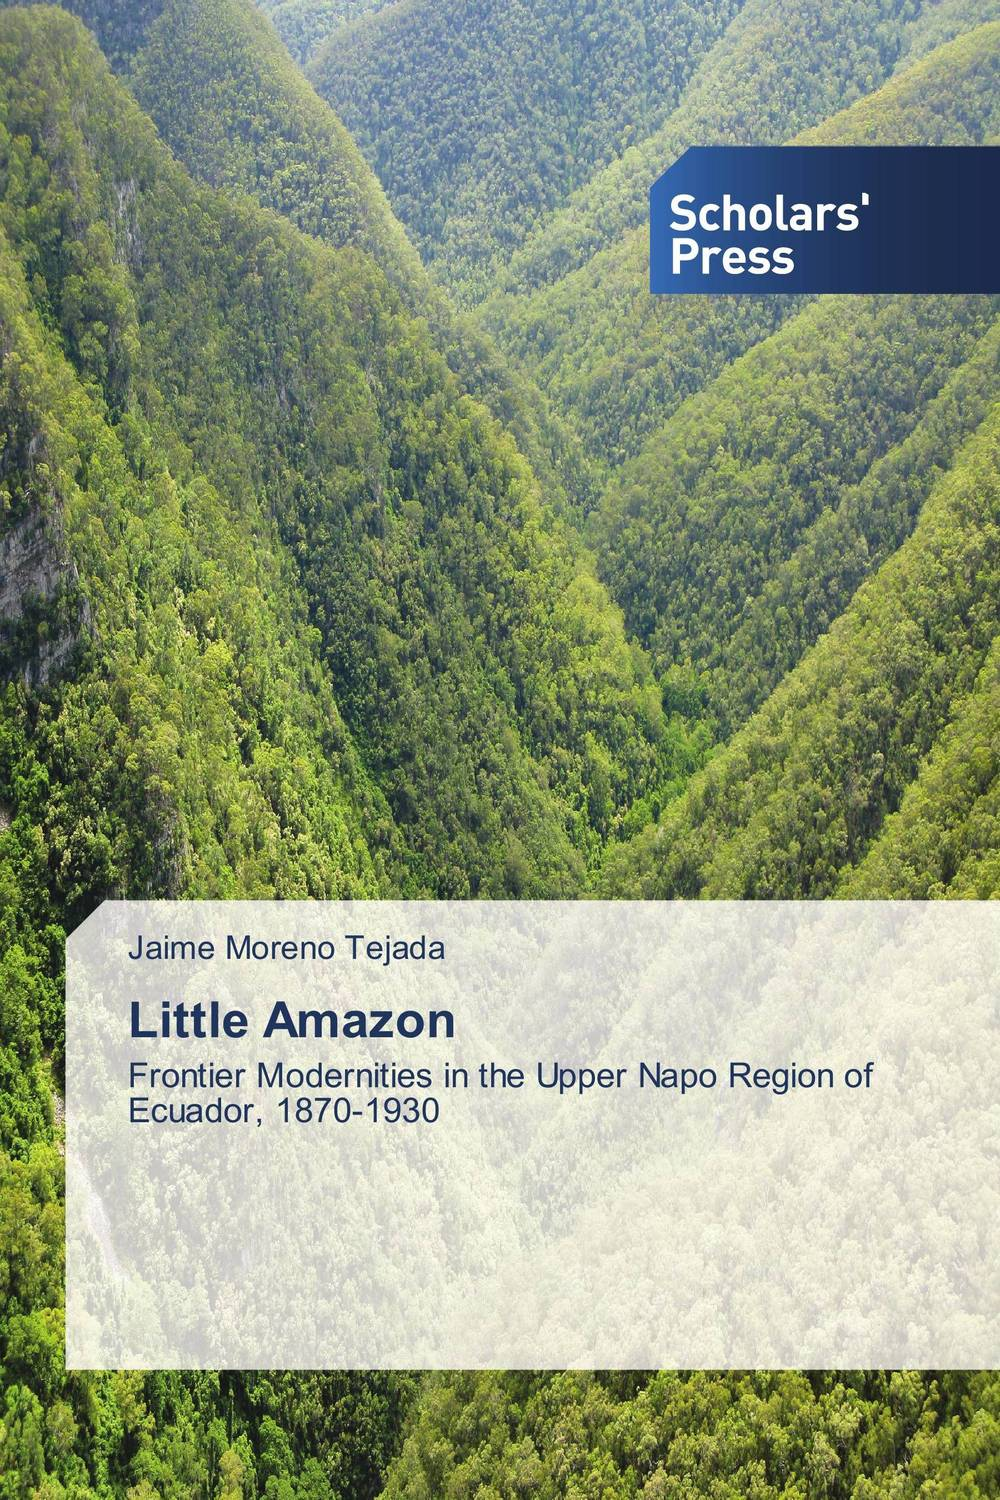 Little Amazon the heir